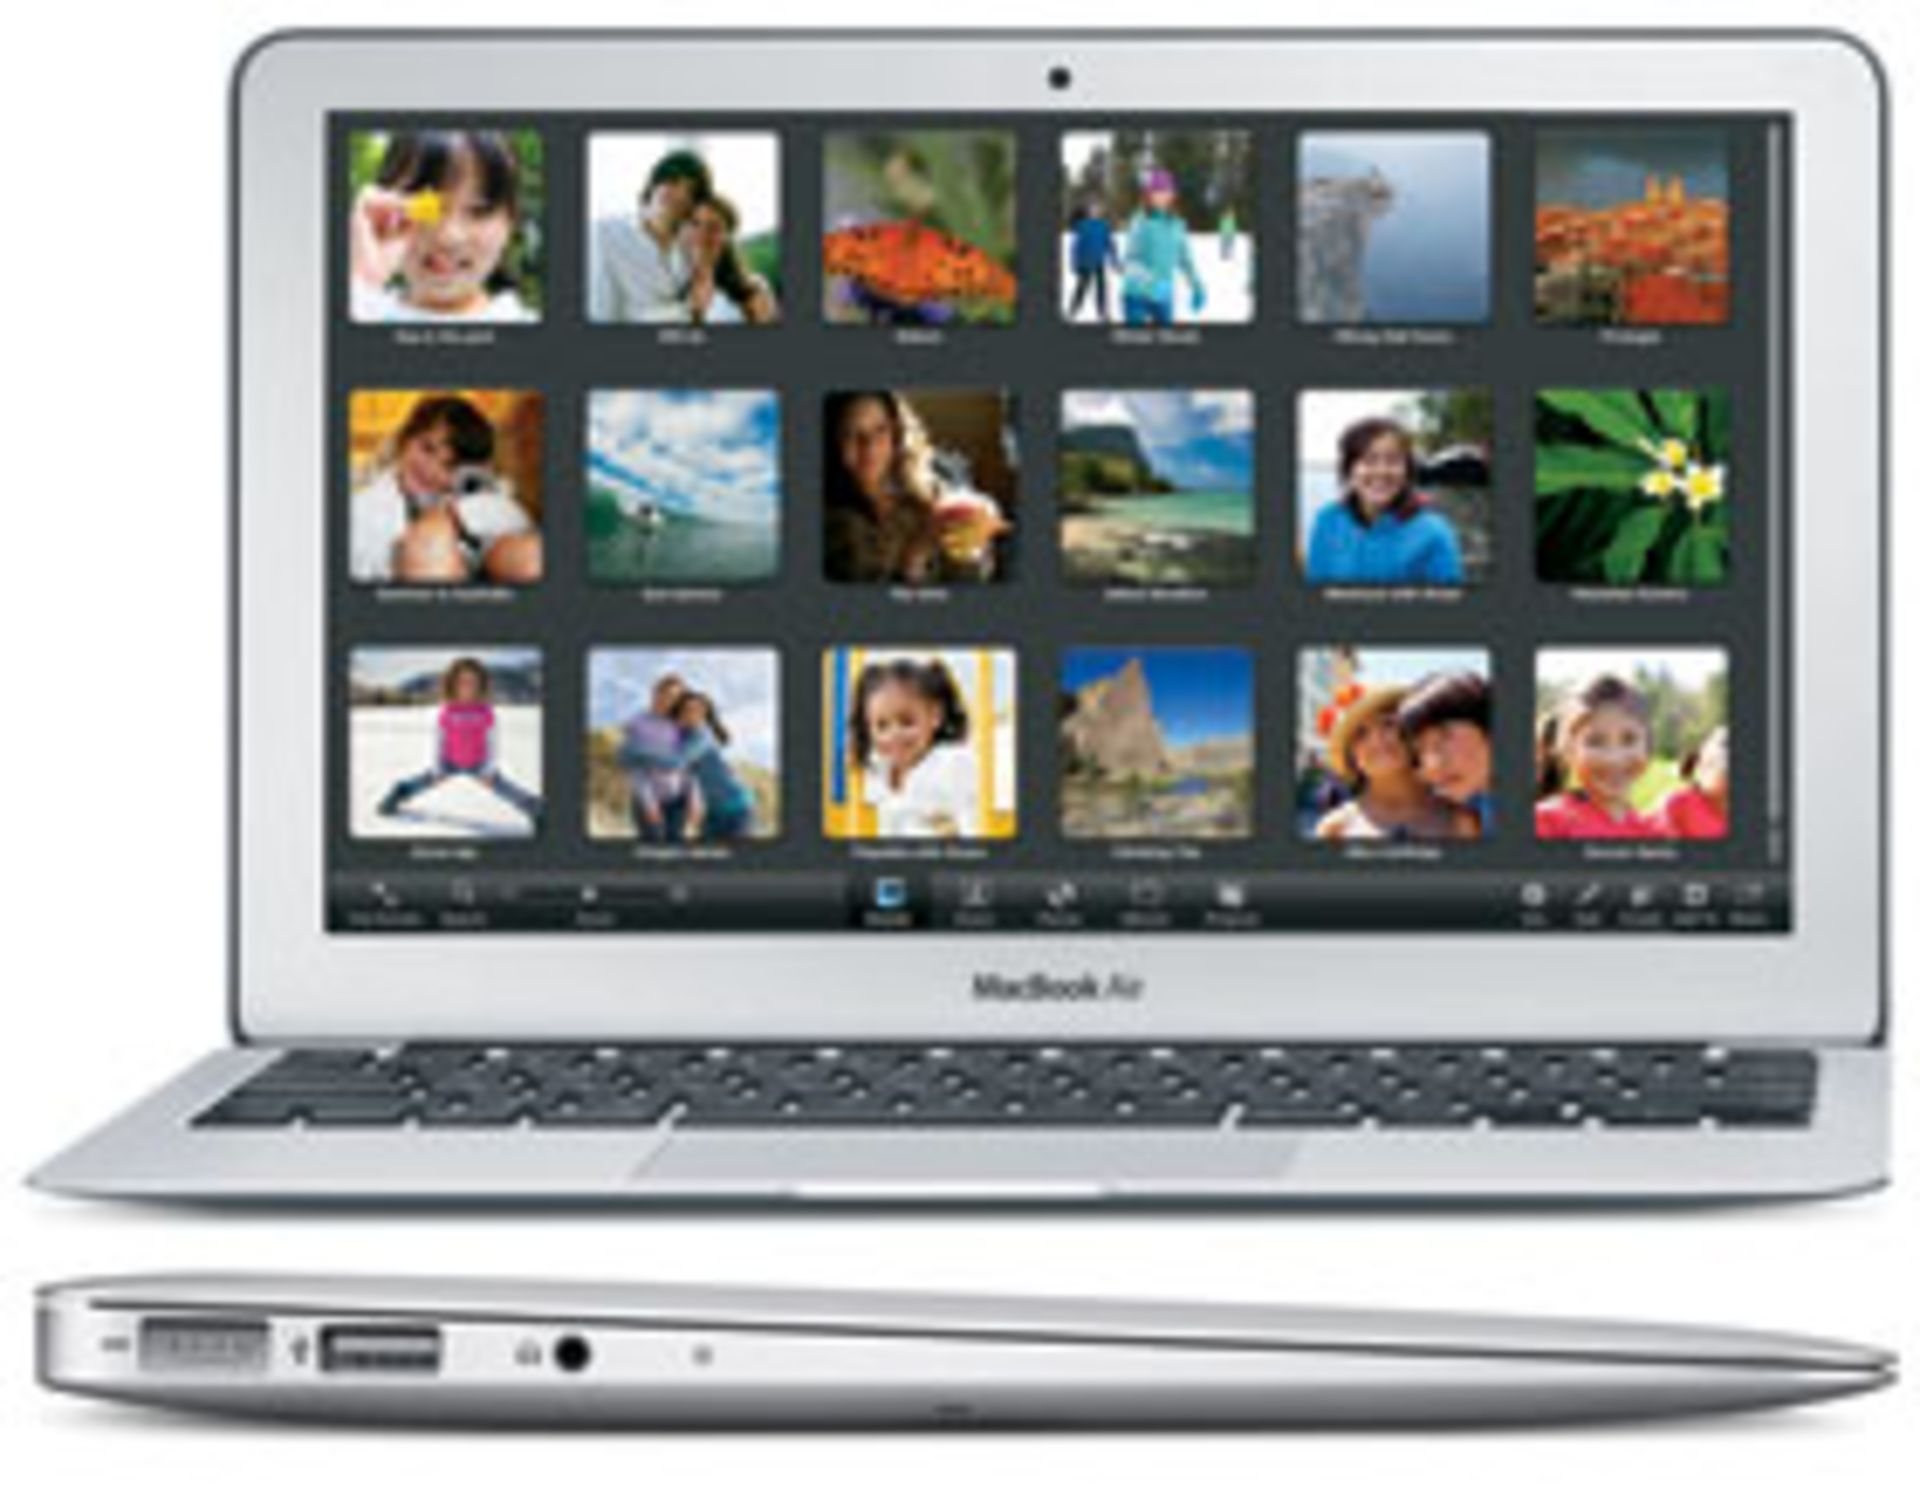 Lot 60005 - V Grade B Macbook Air 11.6 Inch Core 2 Duo - 64GB SSD - A1370 - Available Approx 7 Working Days